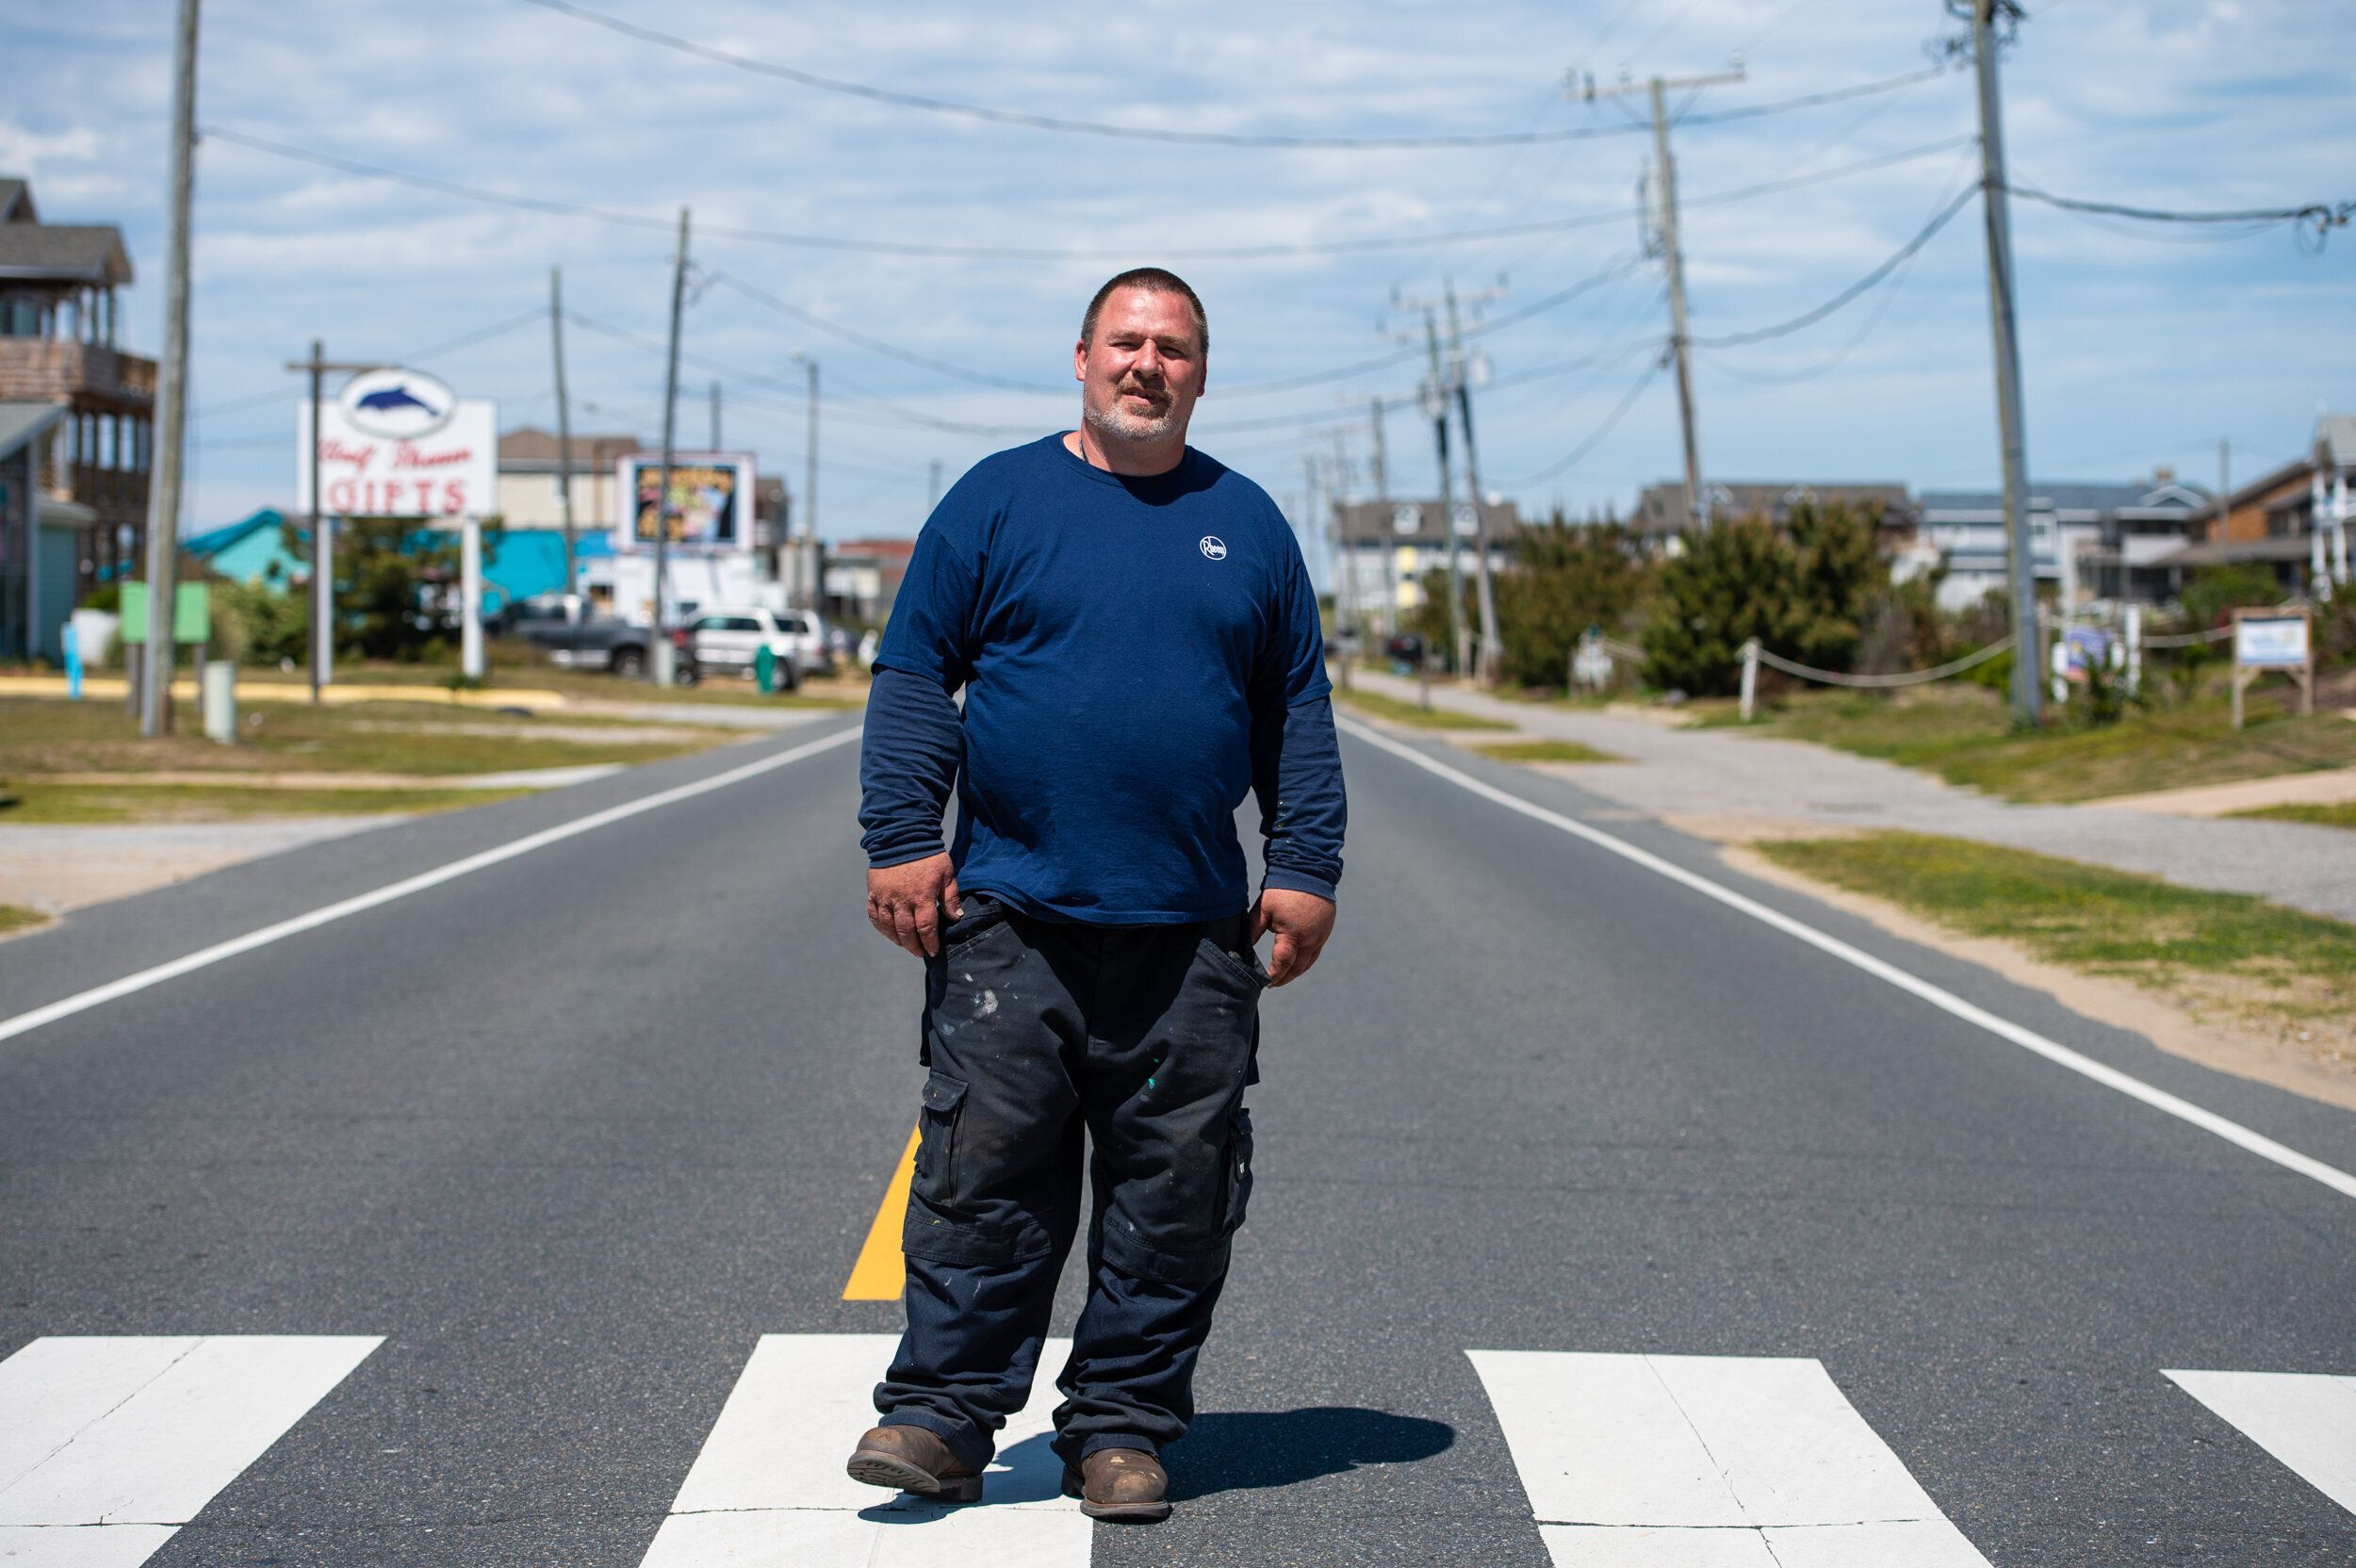 """Joseph Bakersmith, a Dare County resident, plumber and newly dubbed """"essential worker,"""" poses on a deserted """"beach road"""" (Sou"""